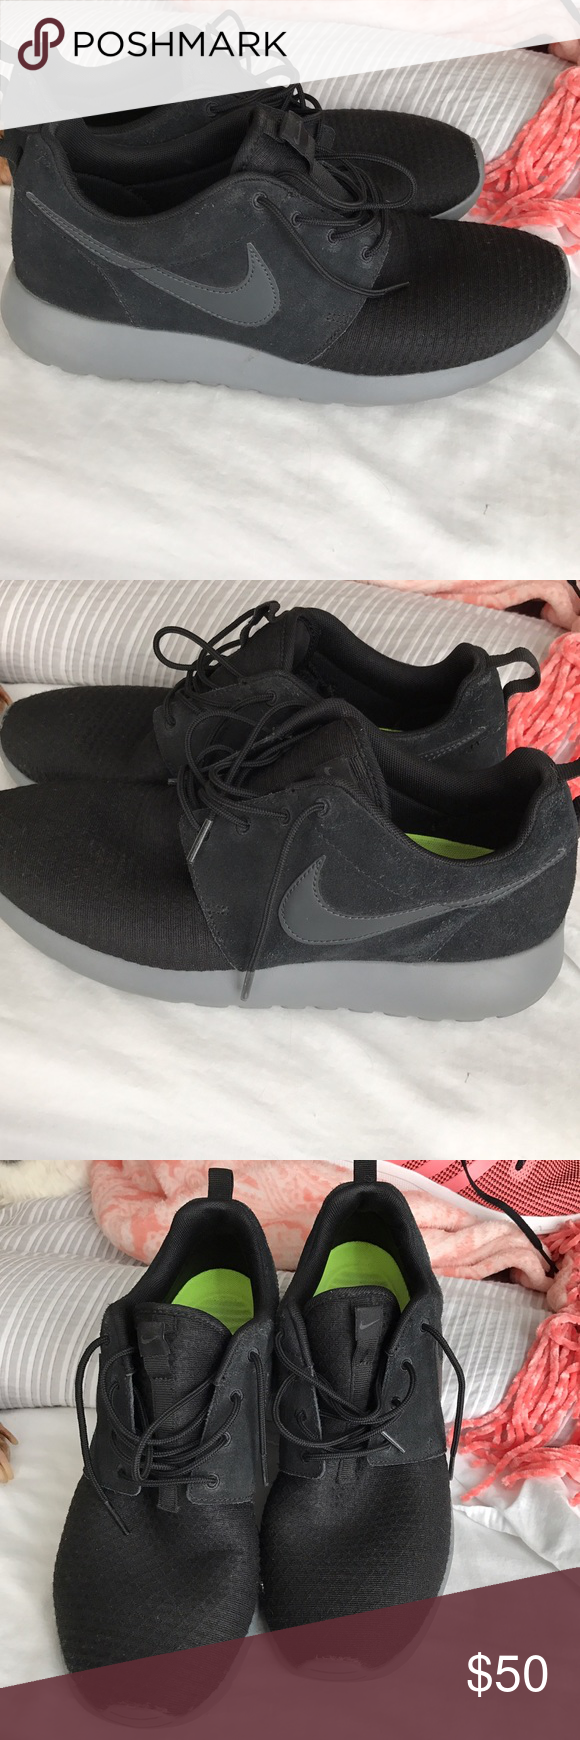 Nike Roshe shoes Shoes that every one will compliment! Rare color. Women's size 10 Nike Shoes Athletic Shoes